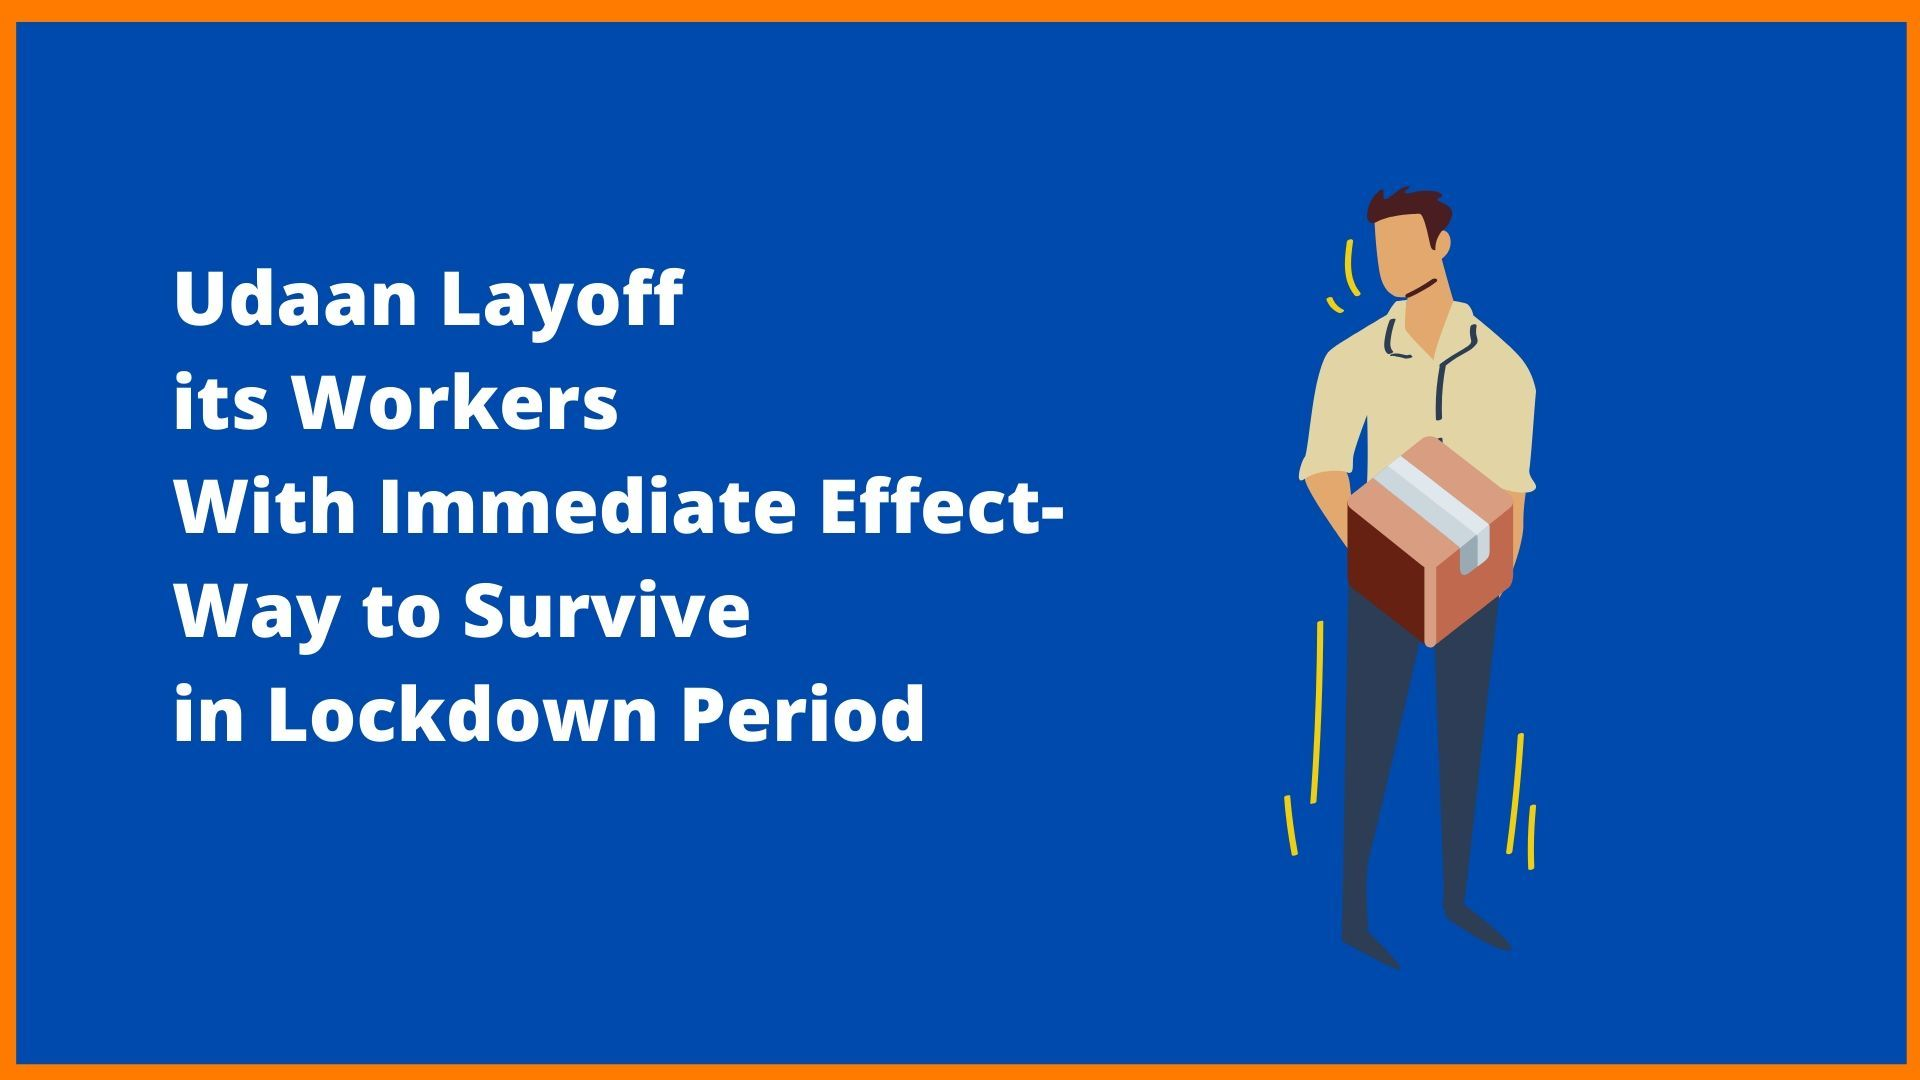 Udaan Layoff its Workers With Immediate Effect- Way to Survive in Lockdown Period